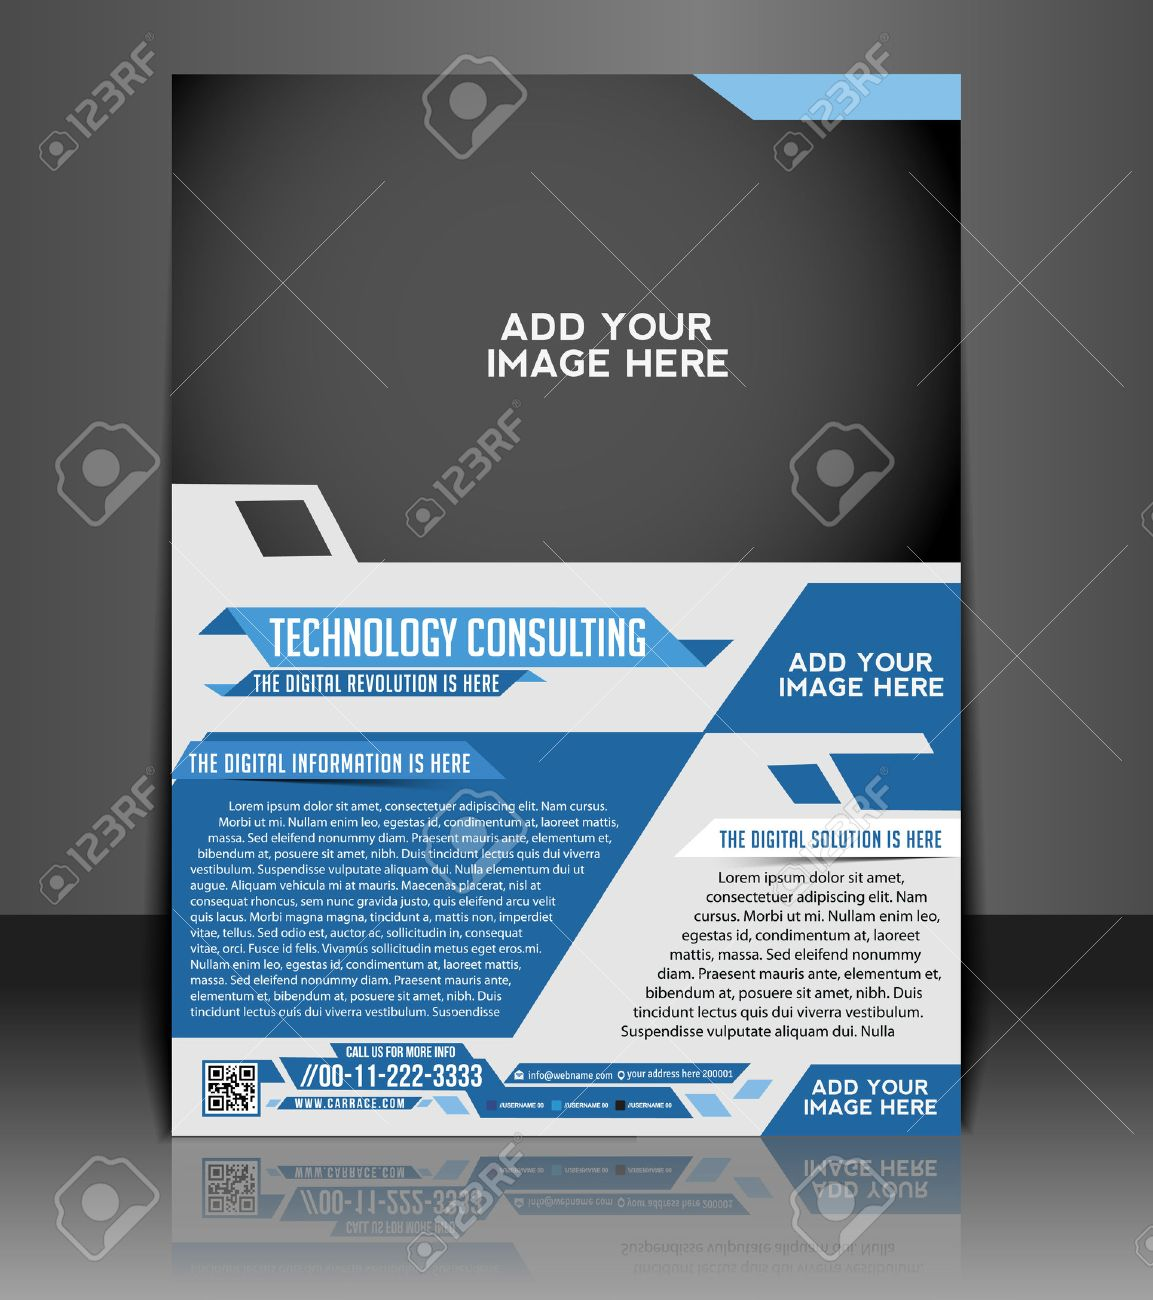 Poster design free download - Poster Design For Free Technology Consulting Flyer Poster Template Design Stock Vector 26824715